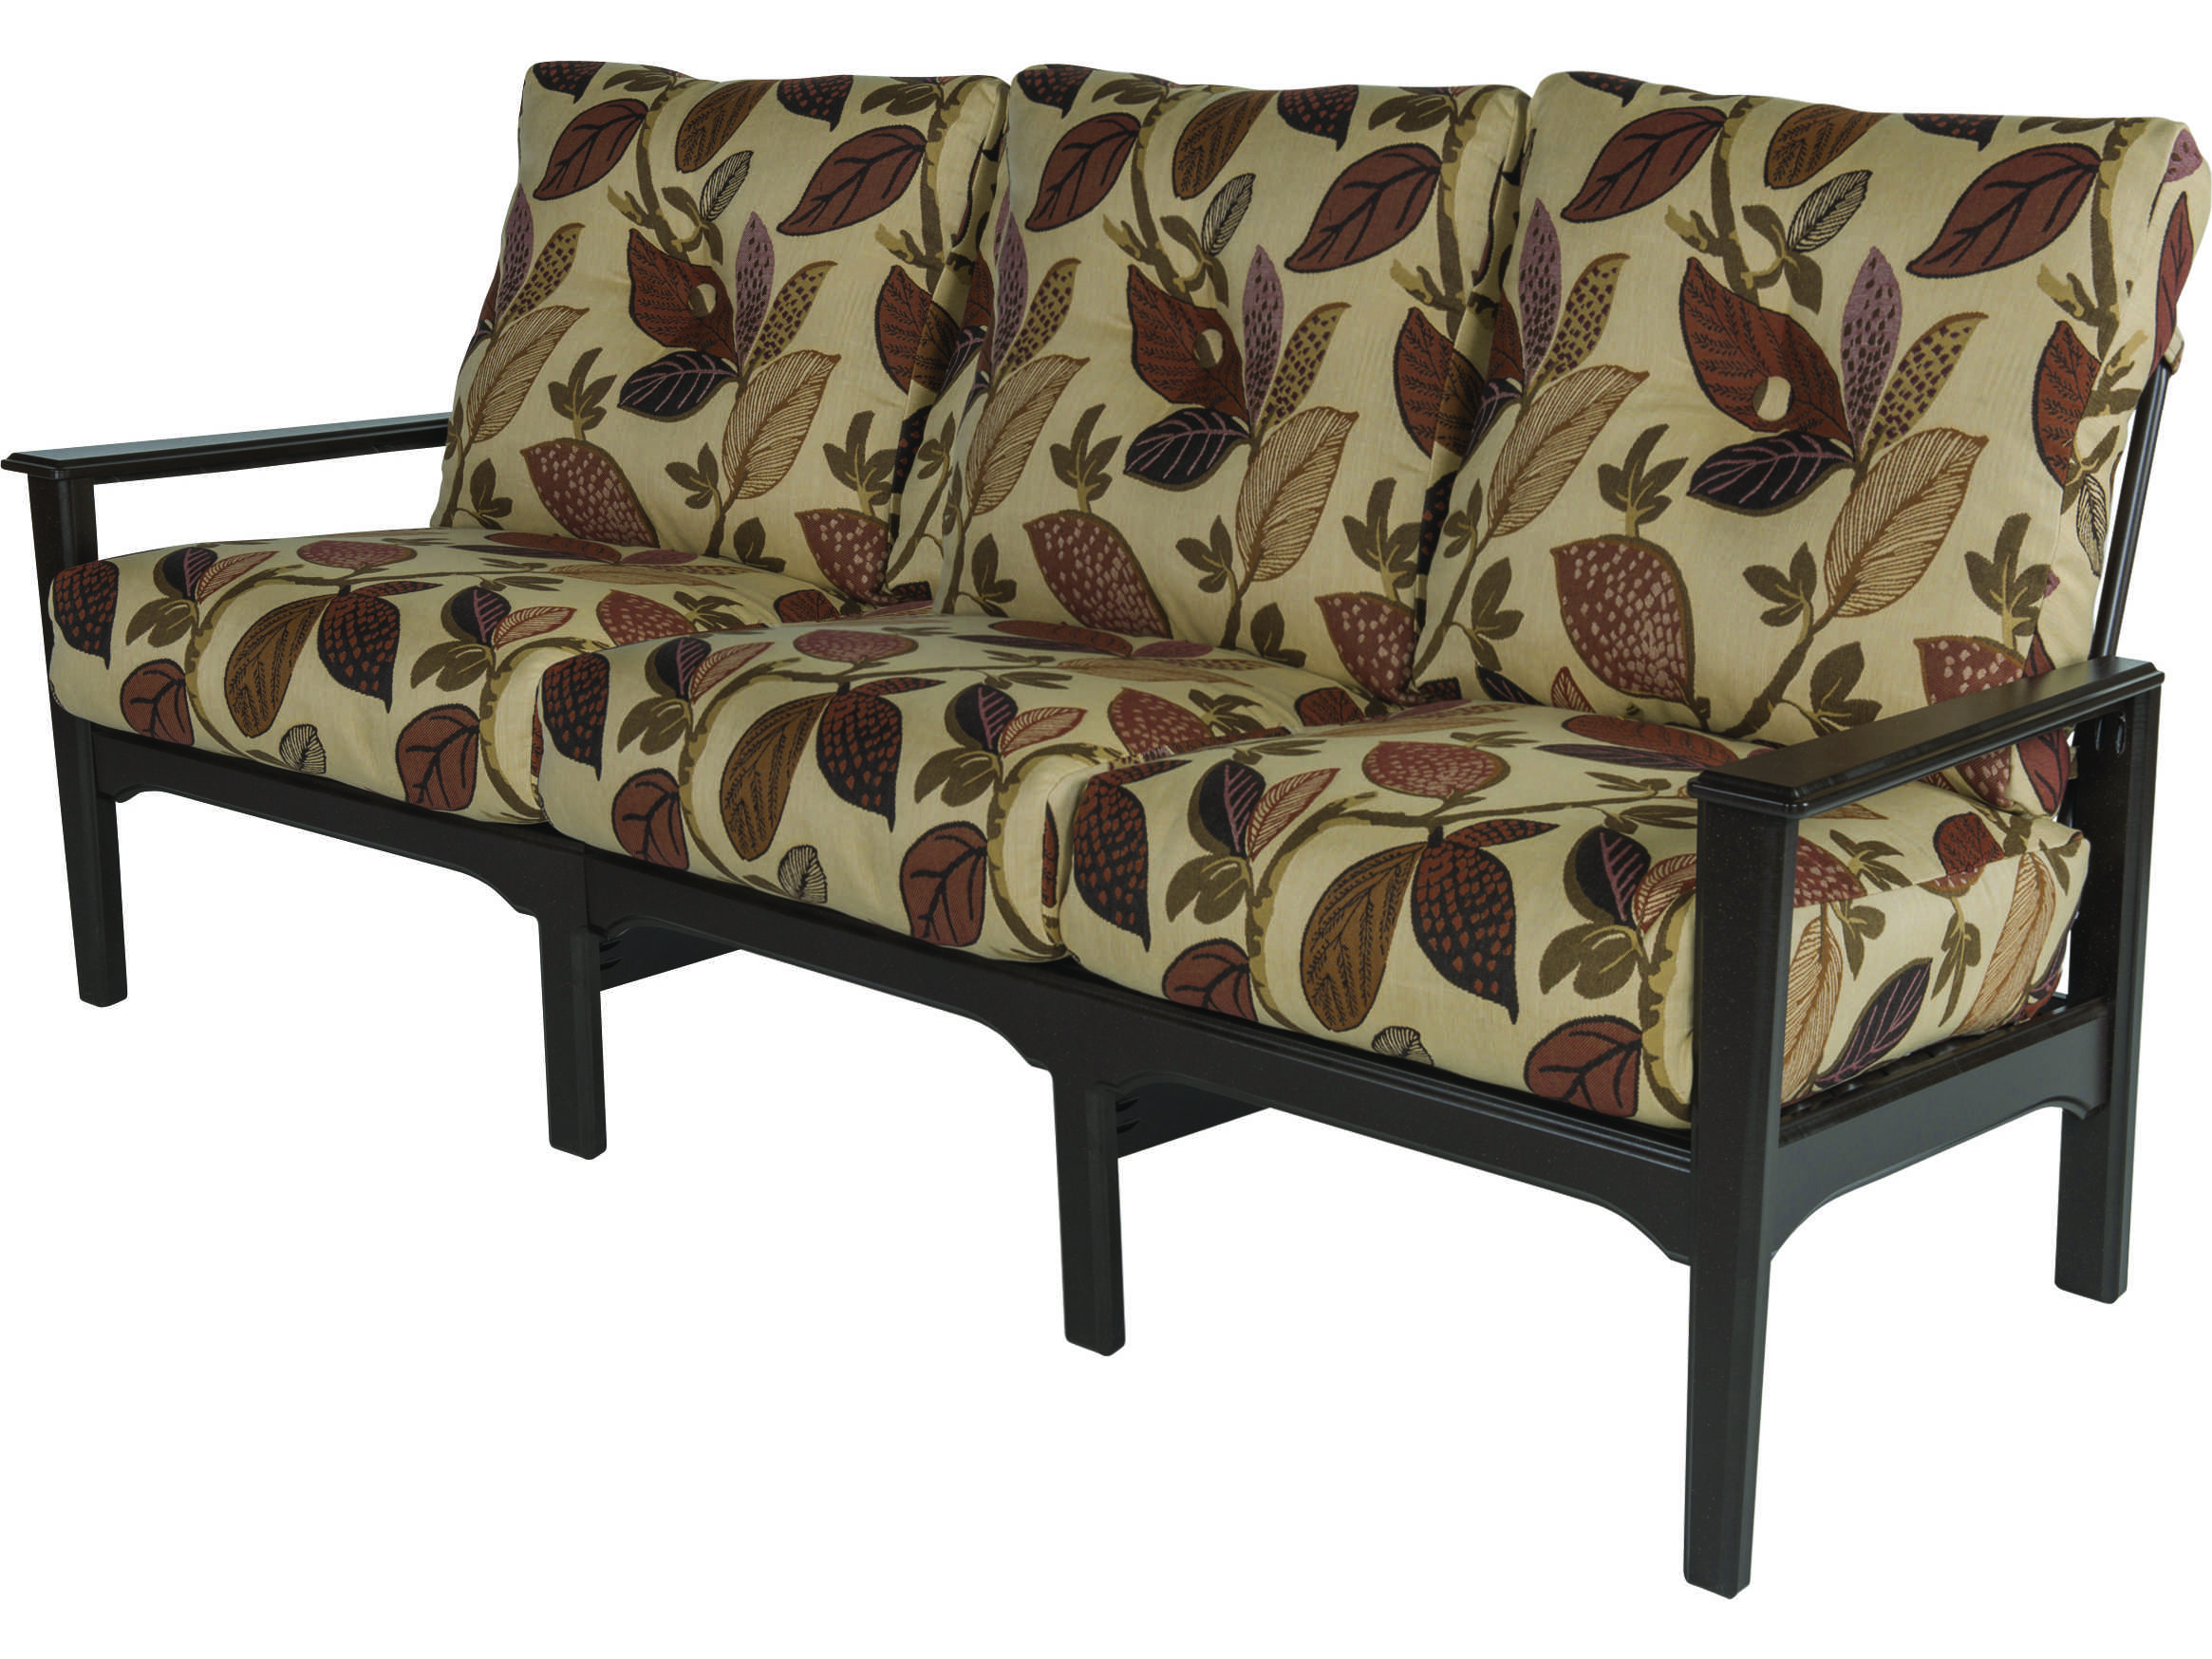 Windward Design Group Cape Cod Deep Seating Mgp Sofa